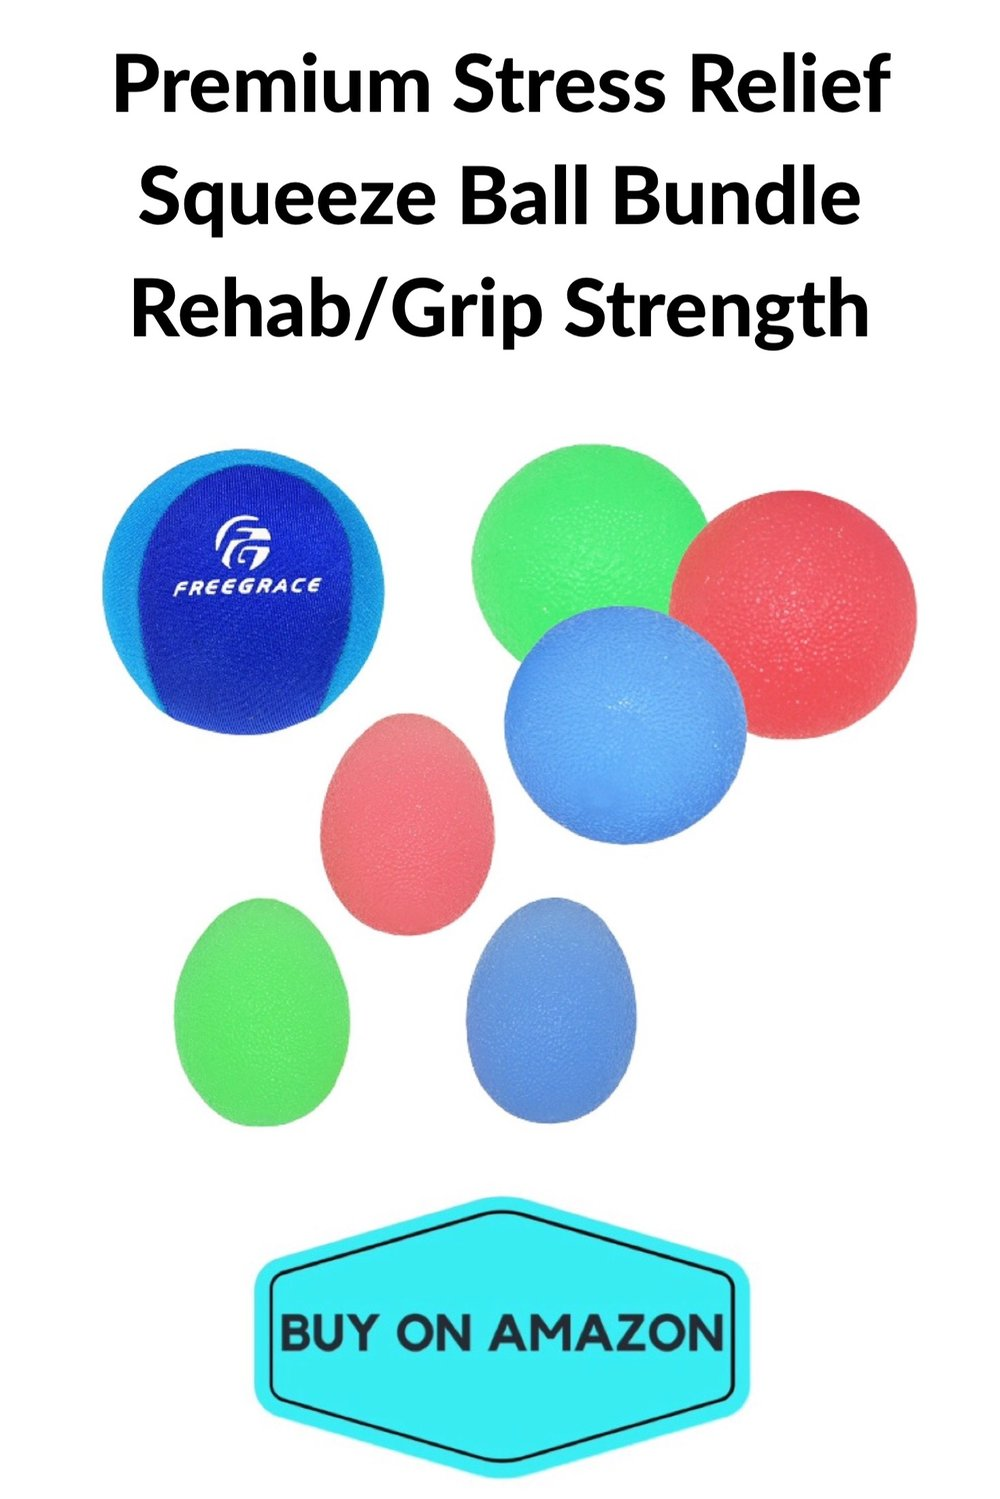 Premium Stress Relief Squeeze Ball Bundle